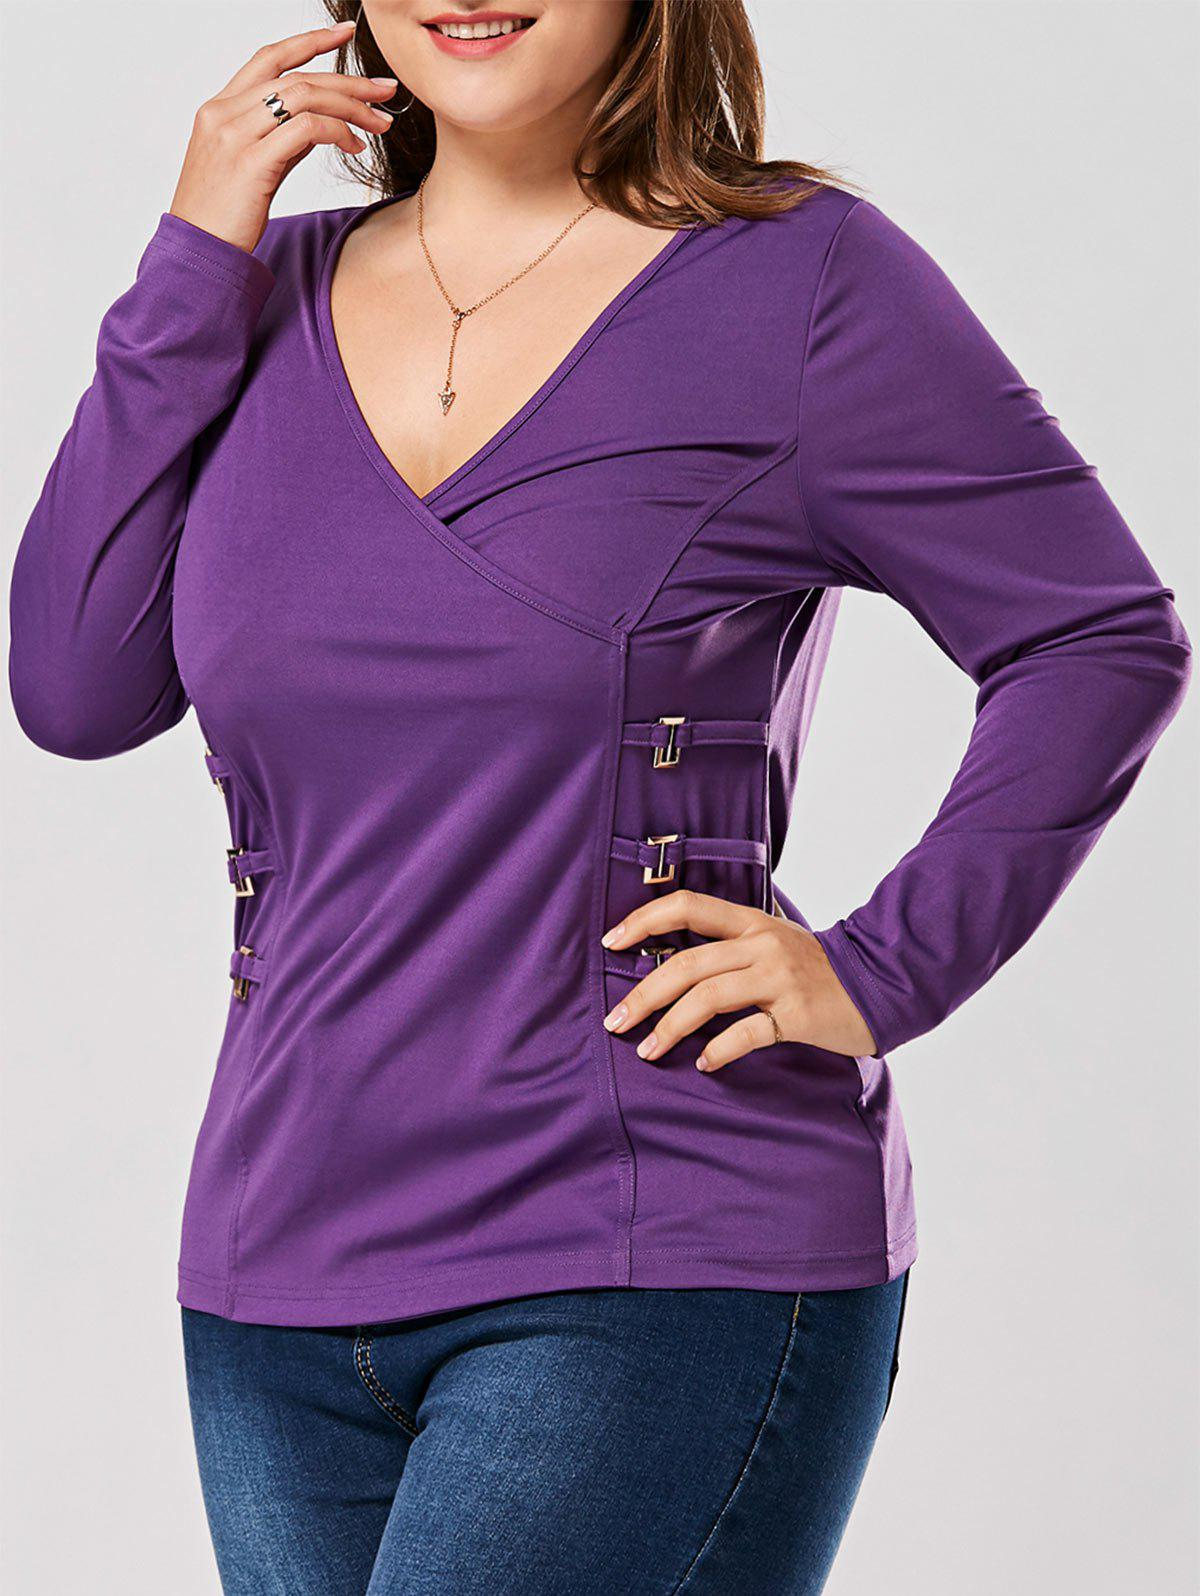 Plus Size Metal Buttons Plunging Neck Surplice TopWOMEN<br><br>Size: XL; Color: PURPLE; Material: Cotton,Polyester; Shirt Length: Regular; Sleeve Length: Full; Collar: Plunging Neck; Style: Fashion; Season: Fall,Spring; Embellishment: Button; Pattern Type: Solid; Weight: 0.3500kg; Package Contents: 1 x T-shirt;